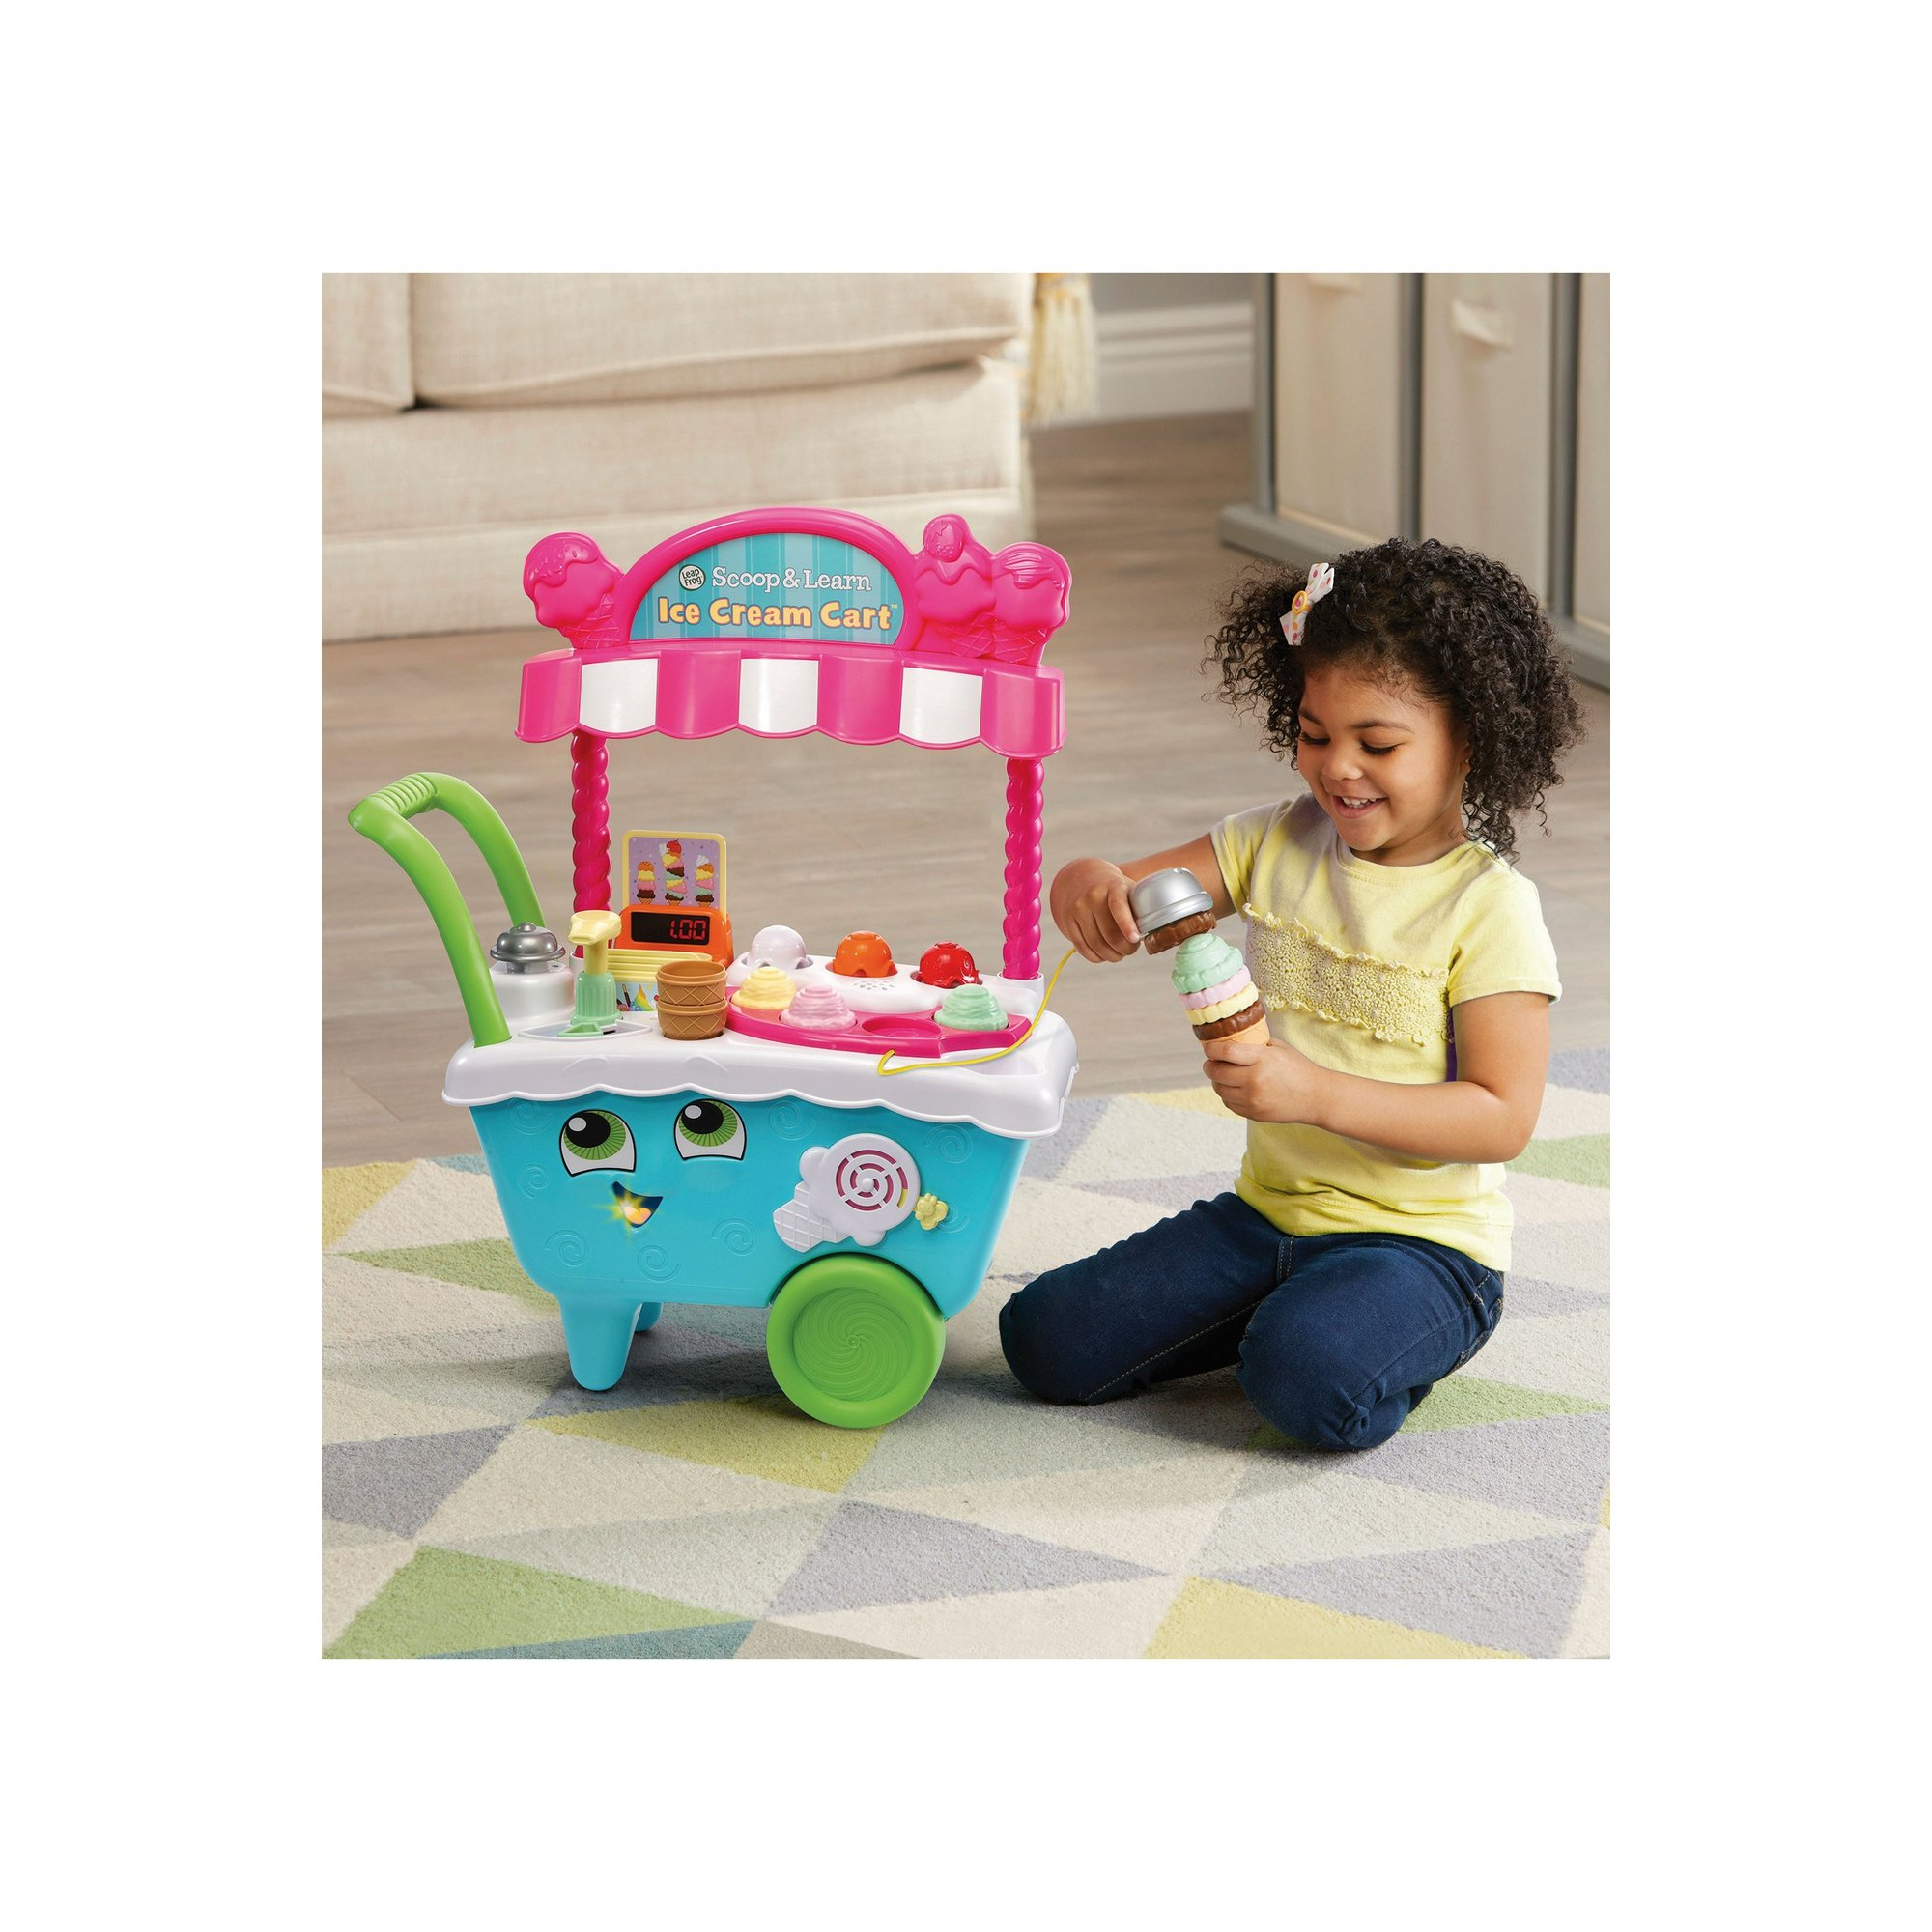 Image of LeapFrog Scoop and Learn Ice Cream Cart